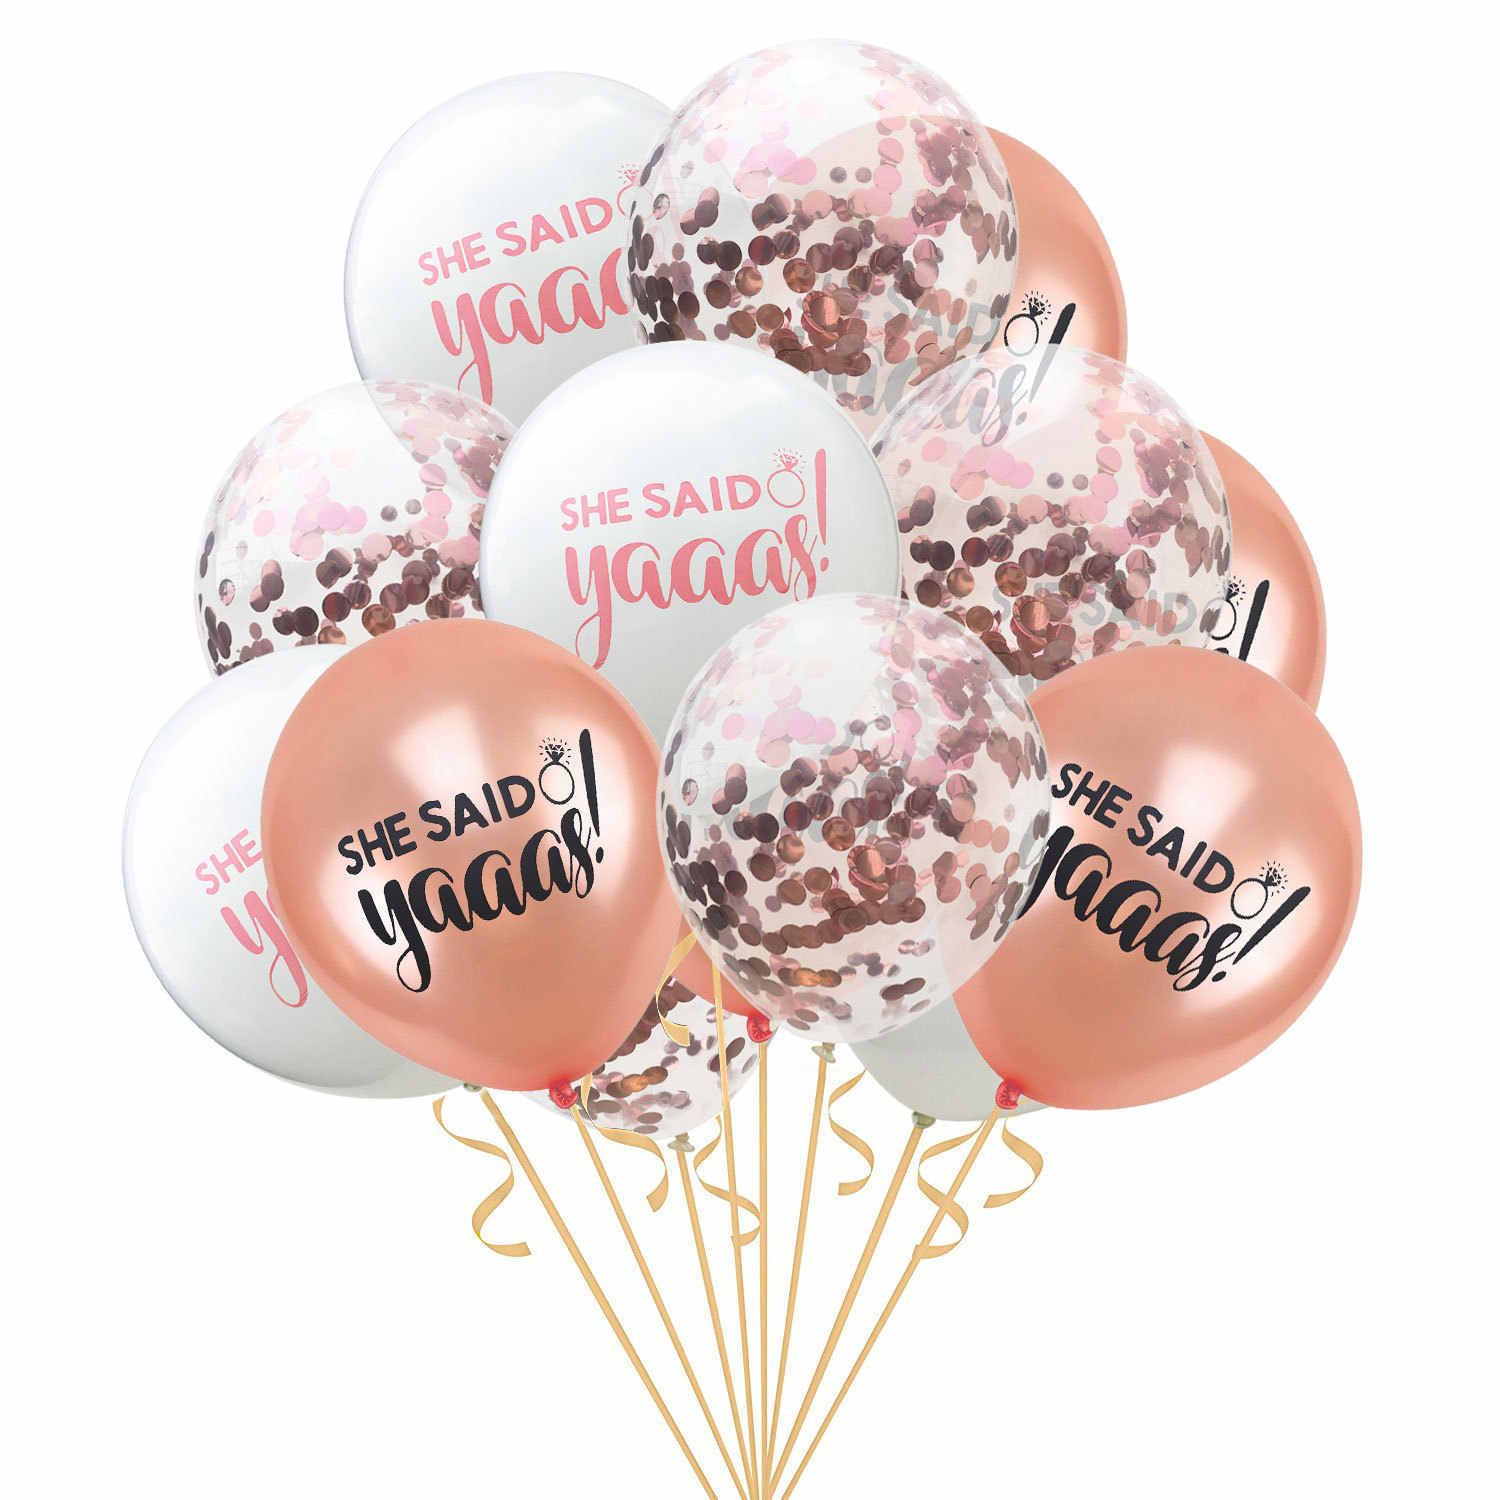 15pcs 12inch Rose Gold Clear Confetti Latex Balloons She Said Yaaas Air Balloons Bachelor Party Hen Party Wedding Decor Supplies